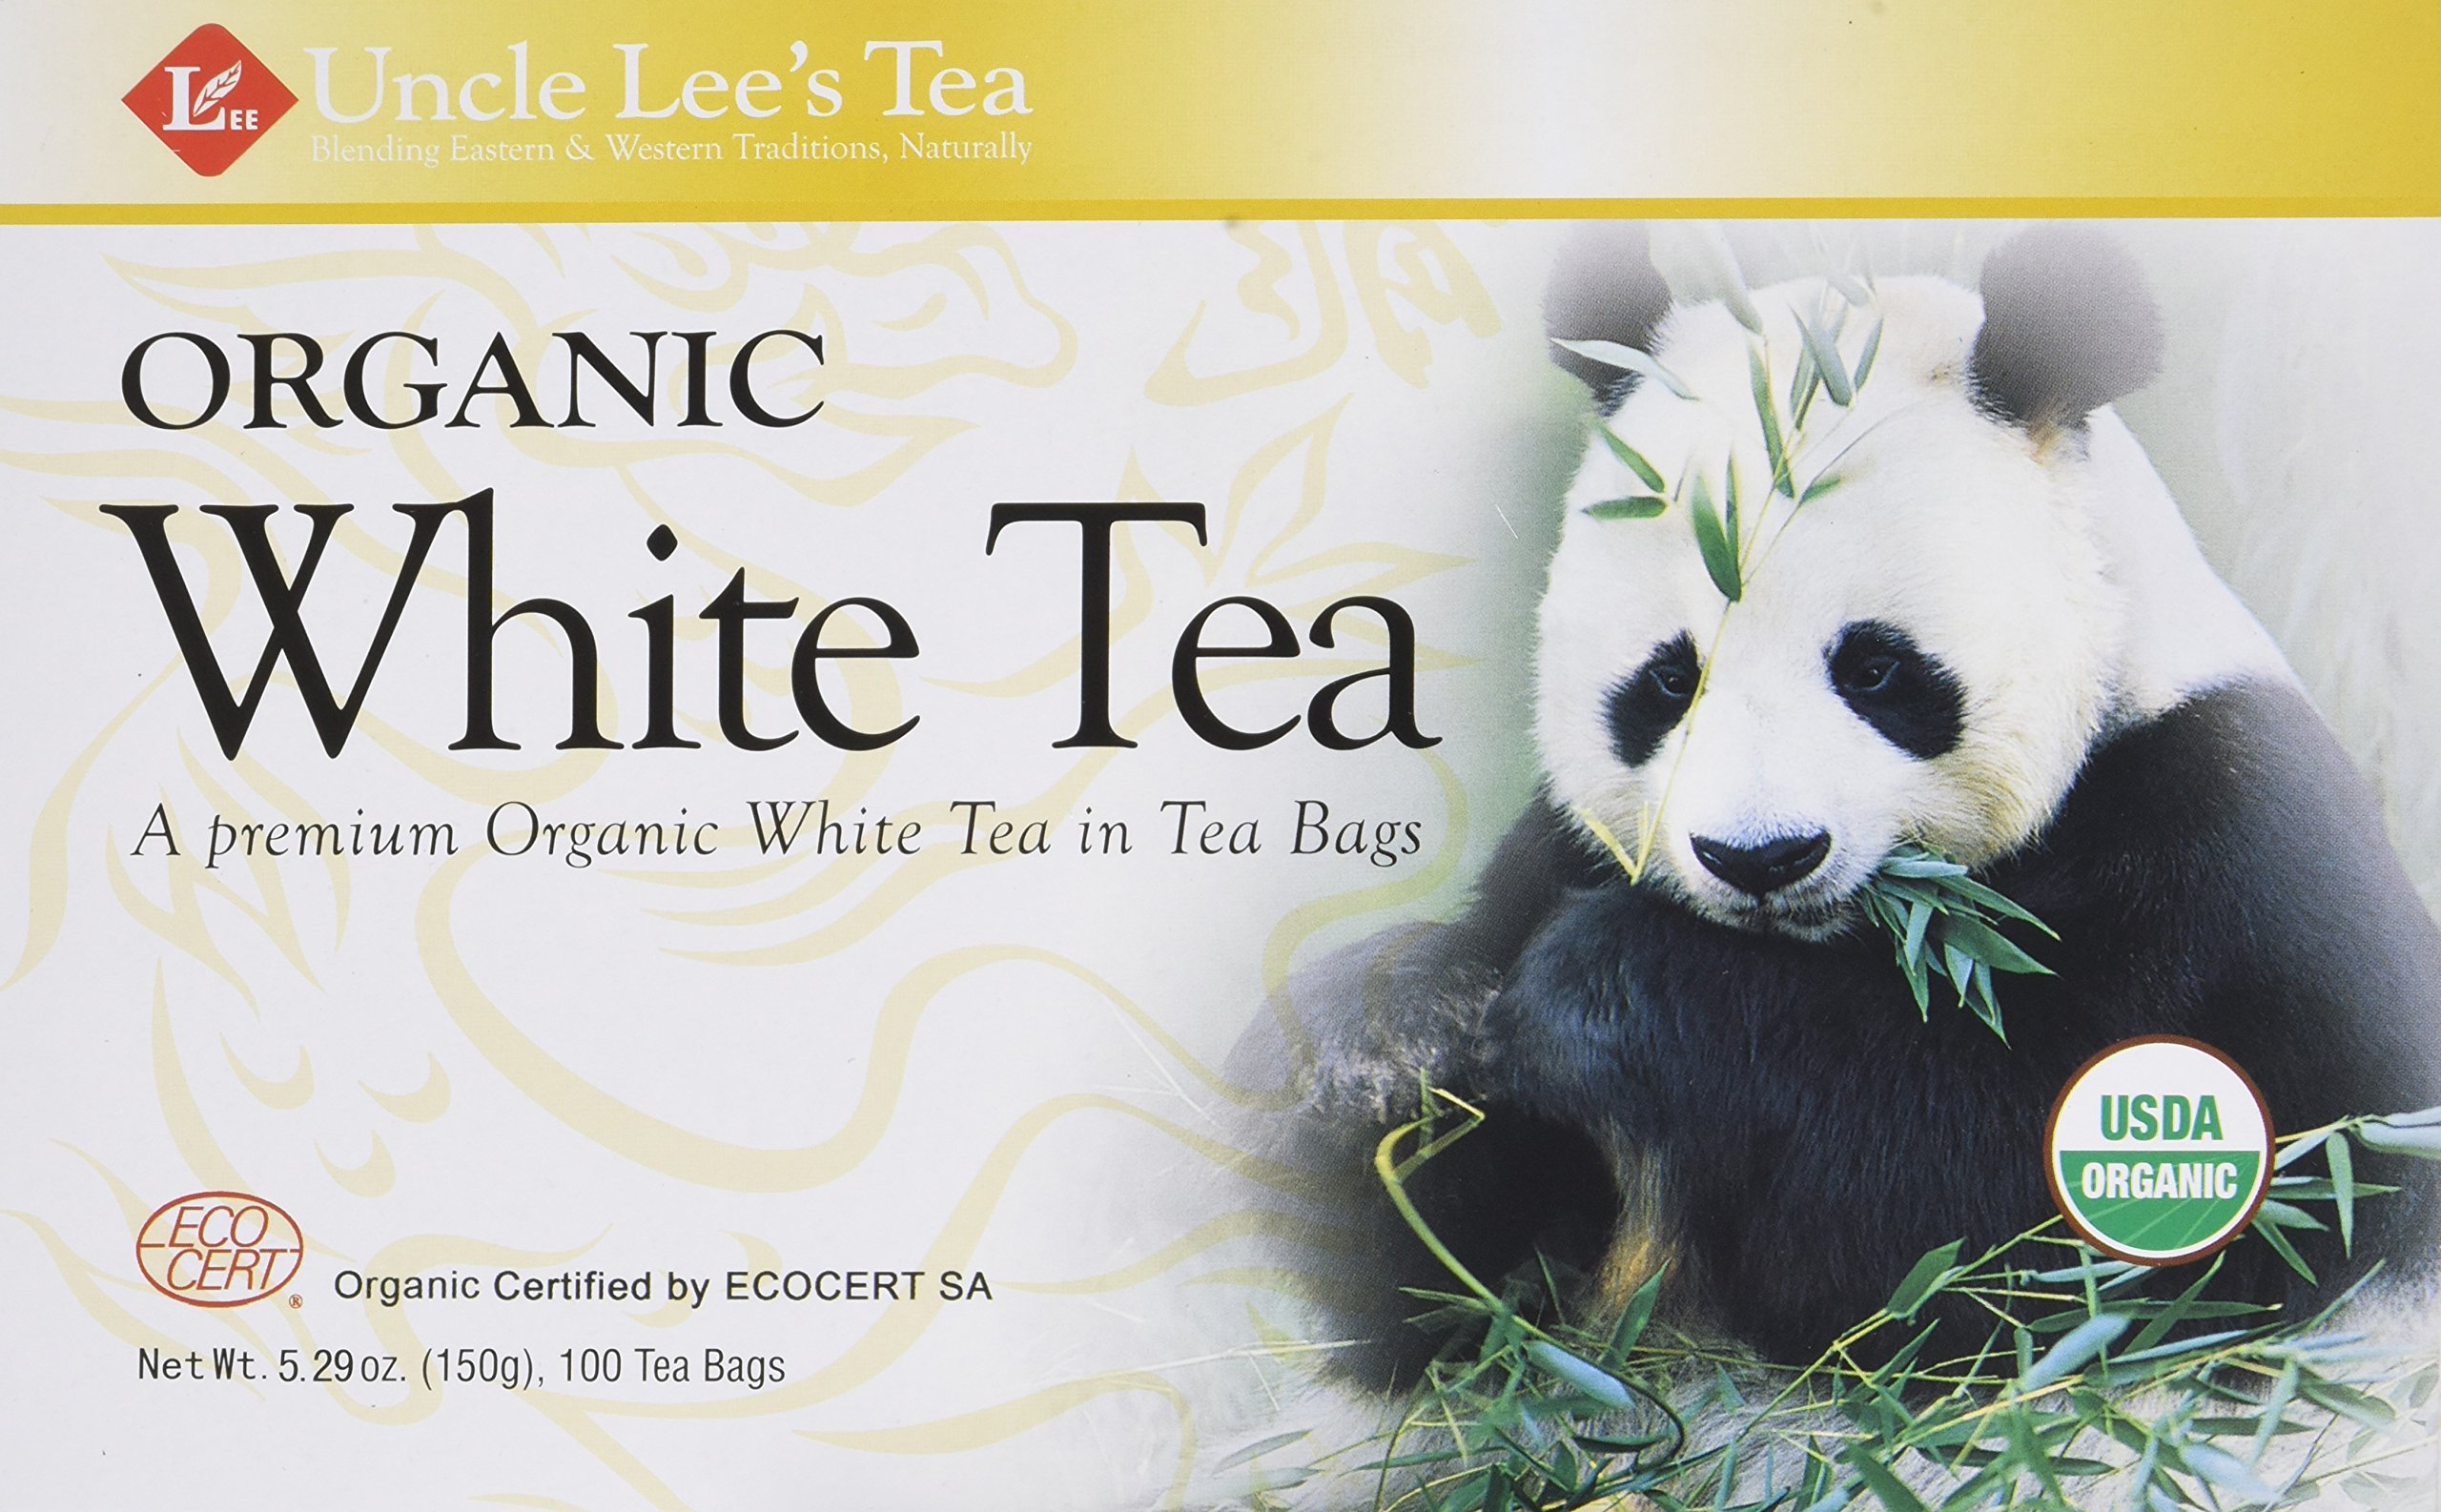 Legends of China Organic White Tea 100 Bags (Pack of 2) by Uncle Lee's Tea